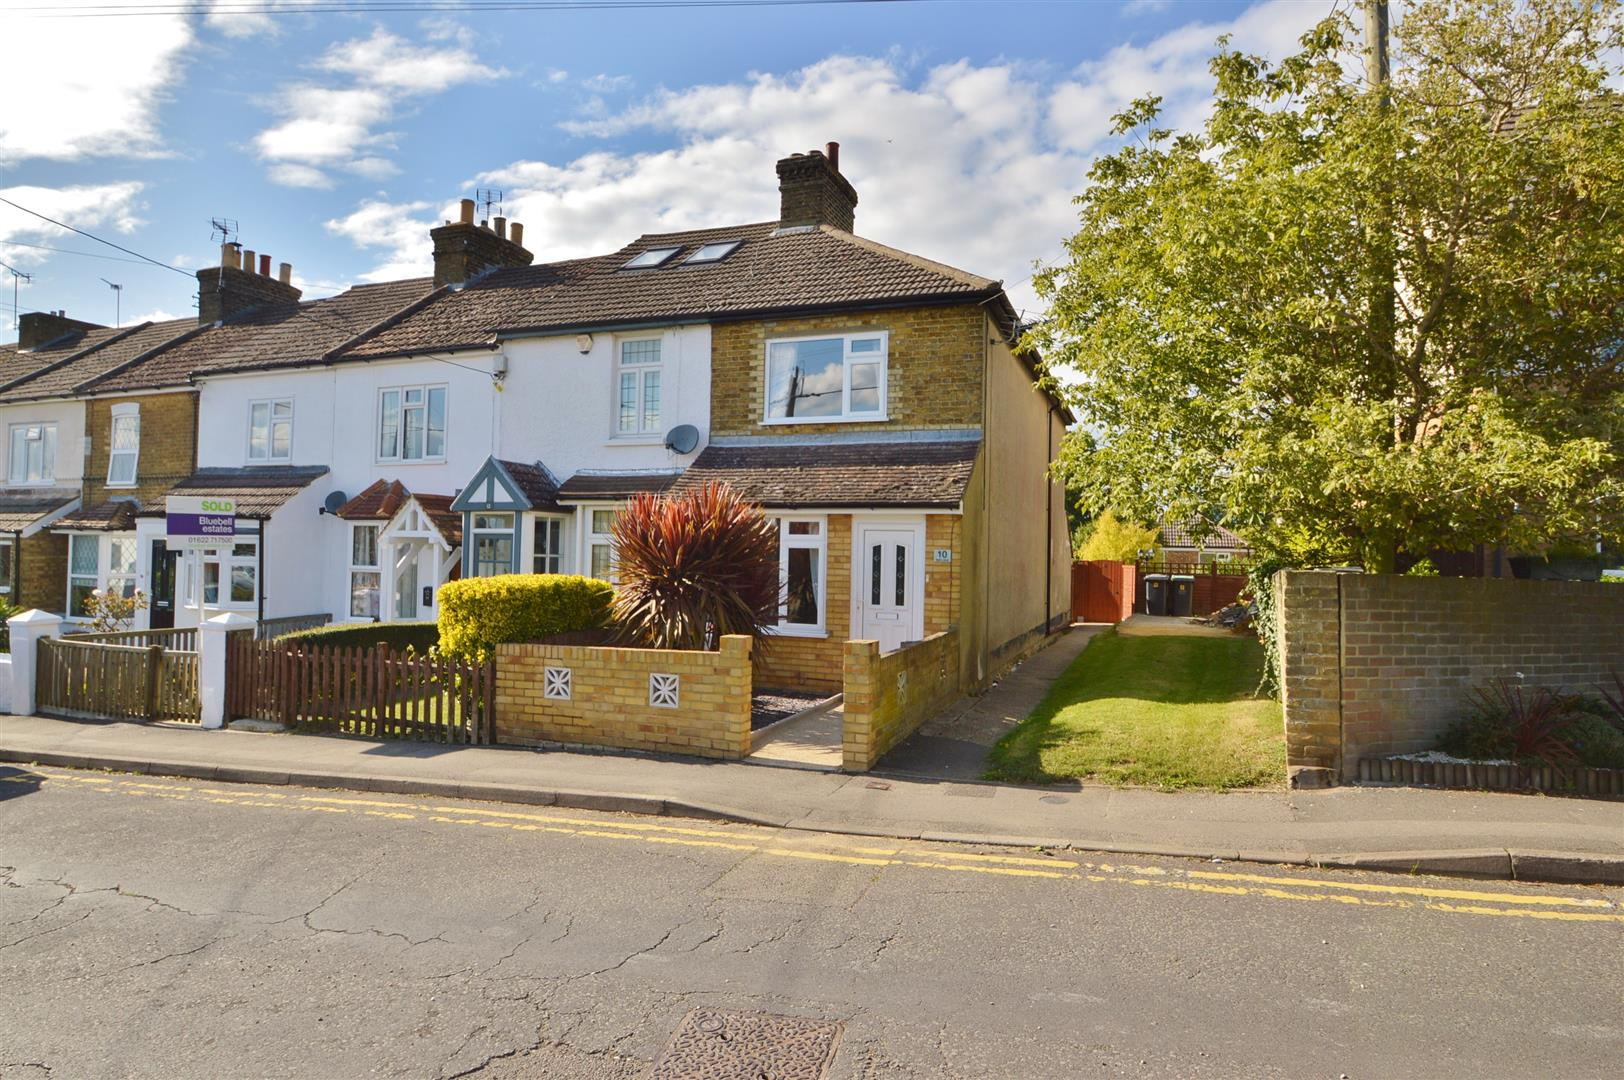 3 Bedrooms Terraced House for sale in Bell Lane, Burham